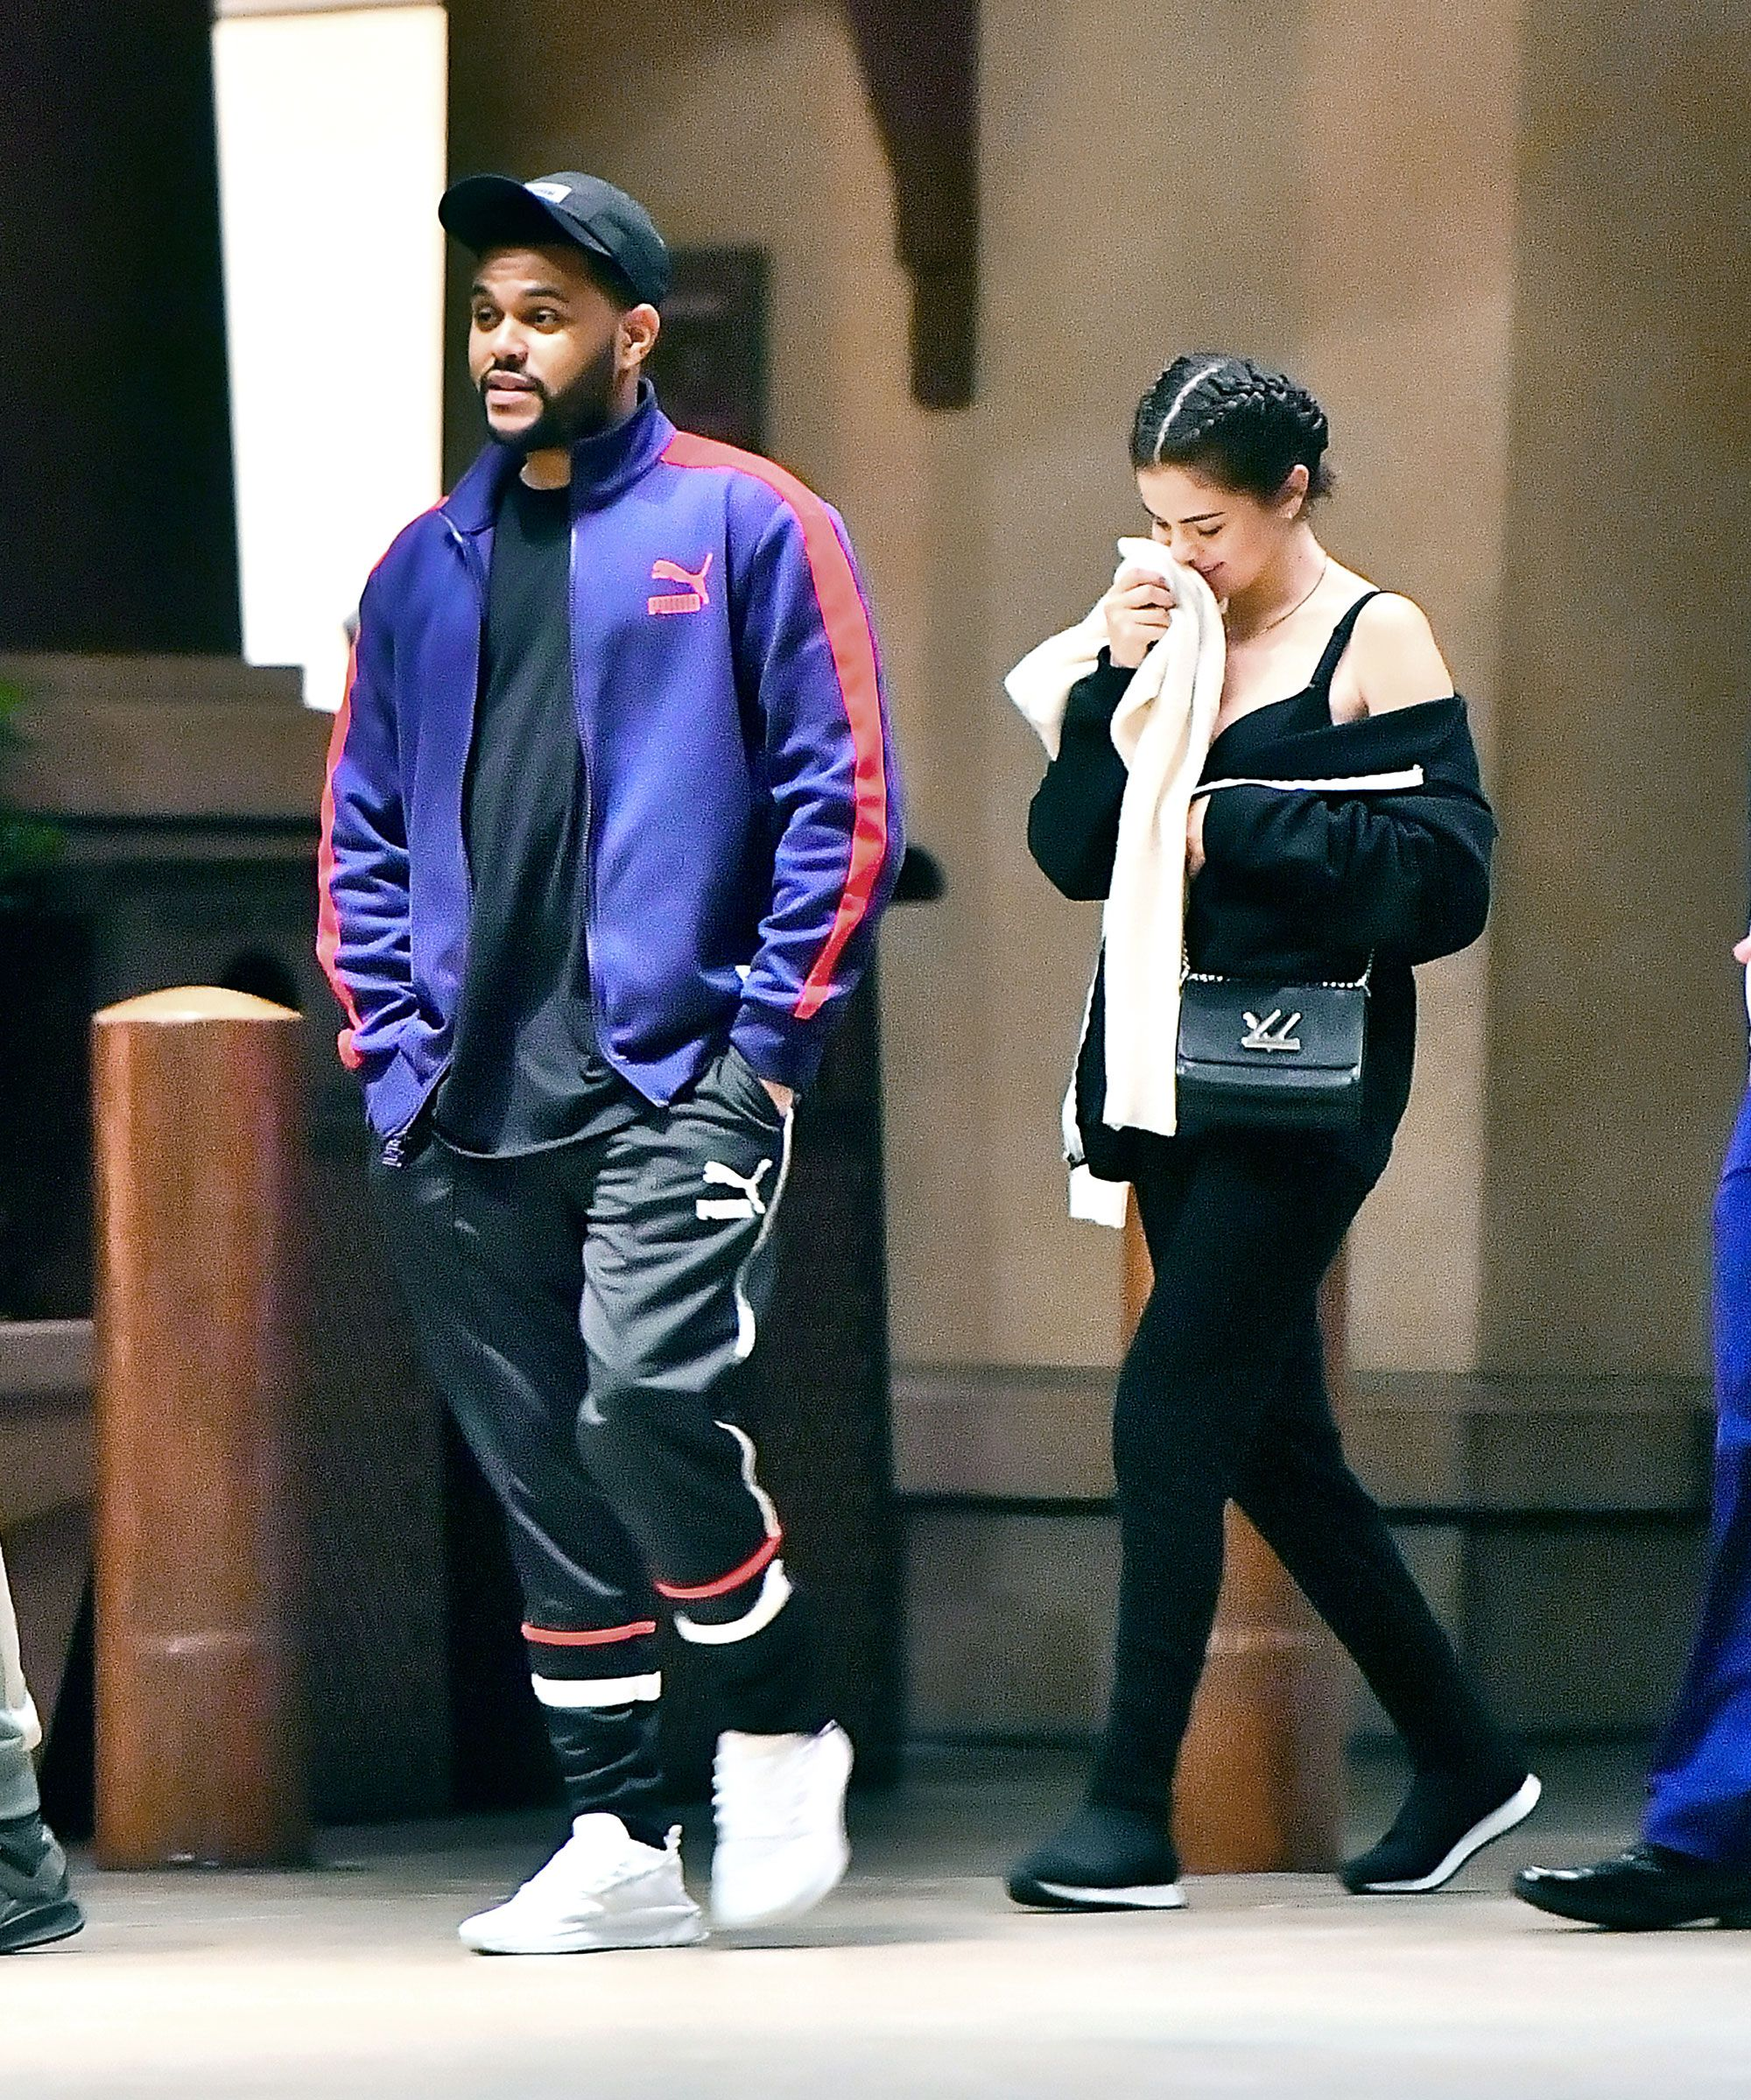 75ddd268ad8 Selena Gomez Wore Sweatpants on a Date With the Weeknd and Looked So  On-Point